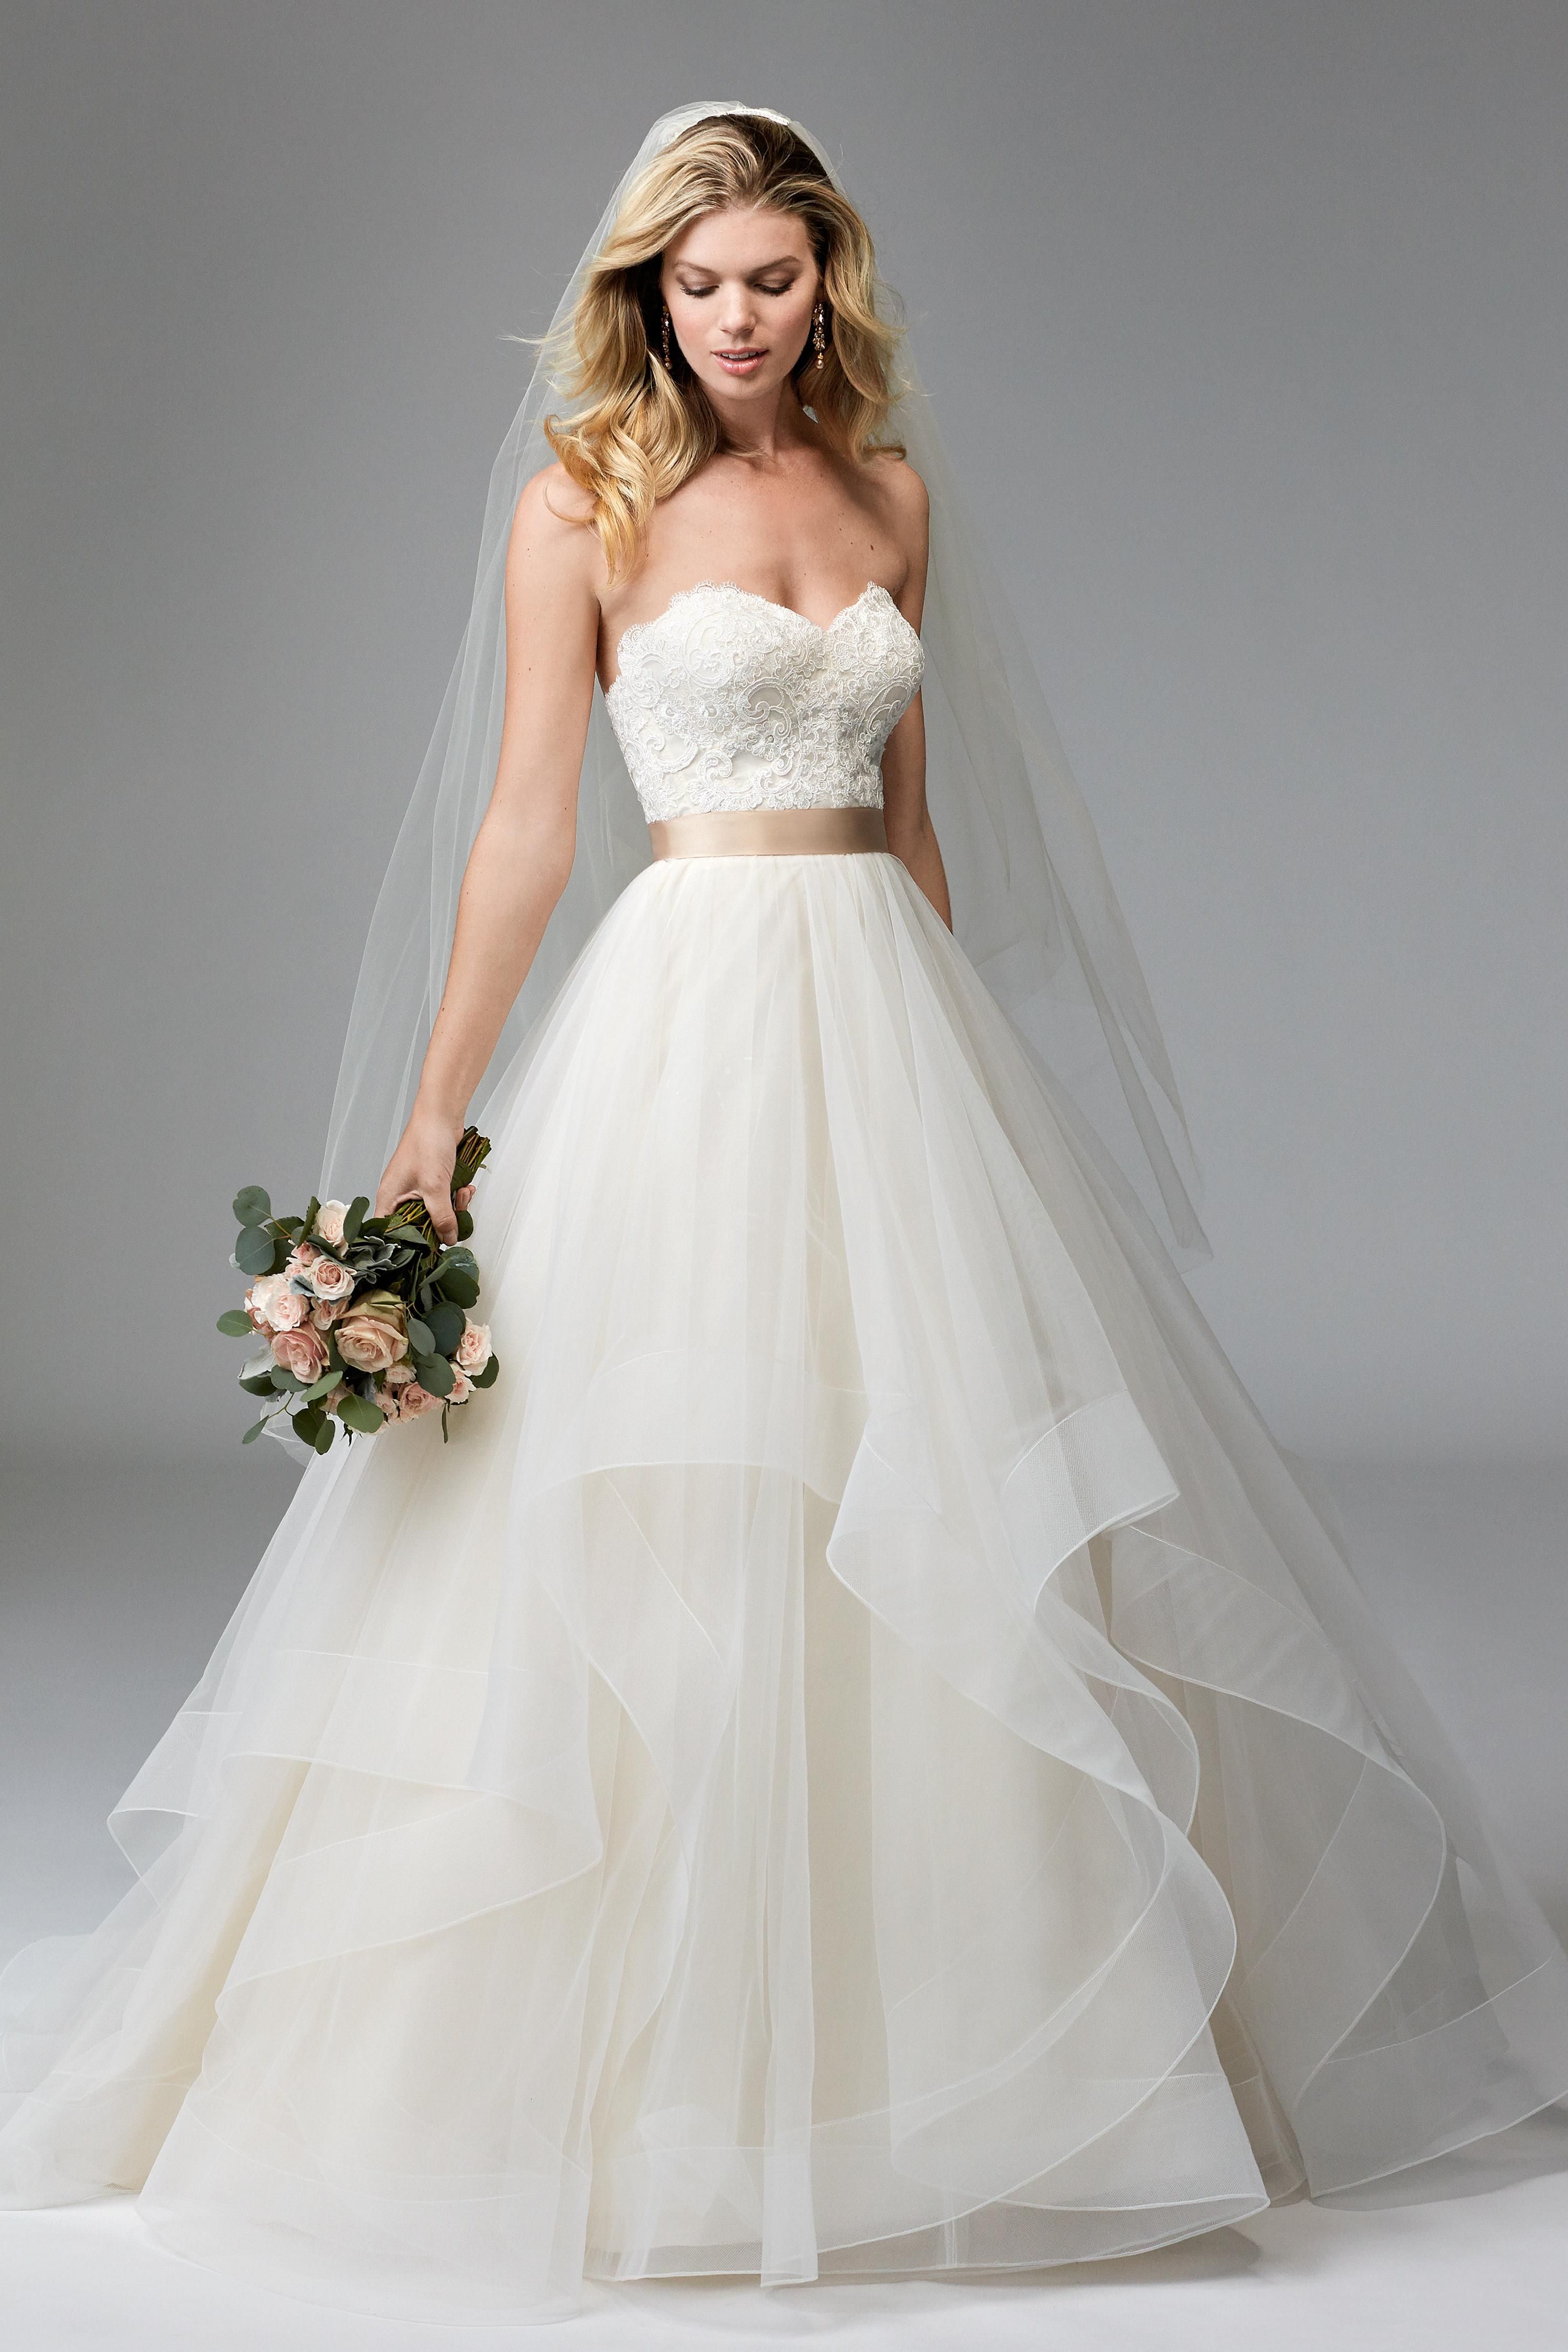 Country girl wedding dress  Pin by  on Wedding gowns  Pinterest  Wedding dress